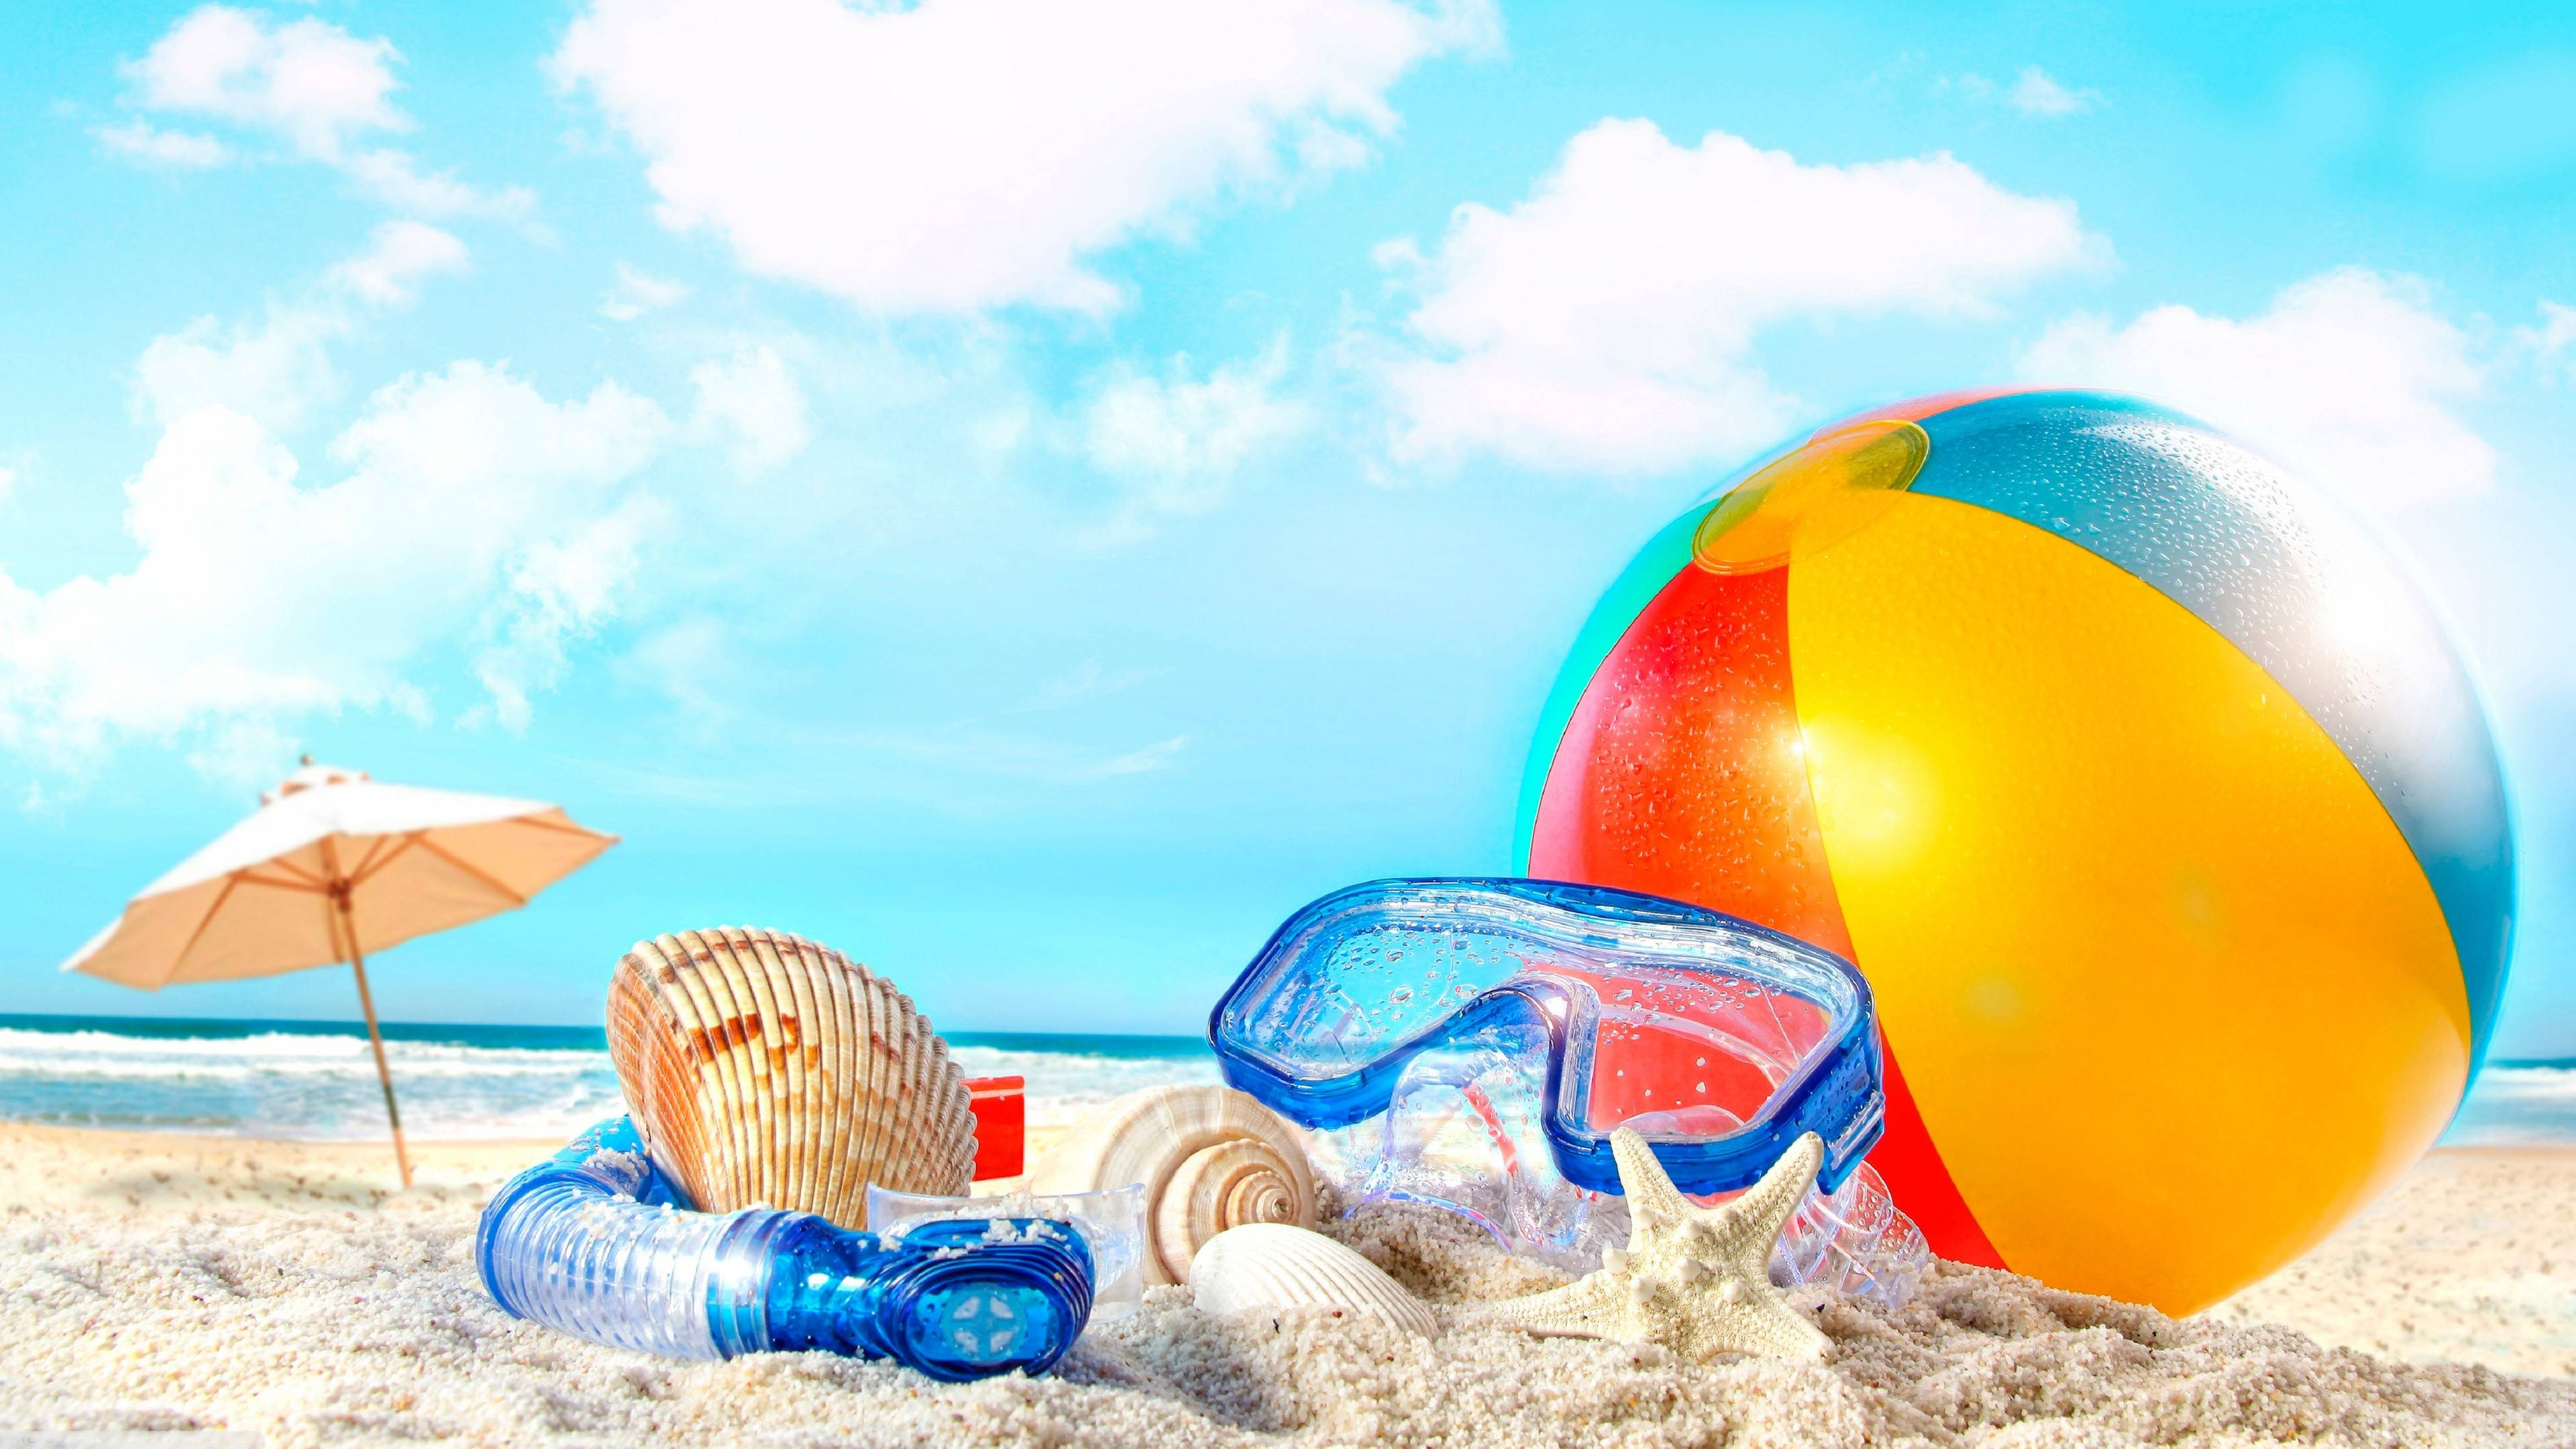 HD Wallpapers Backgrounds Summer